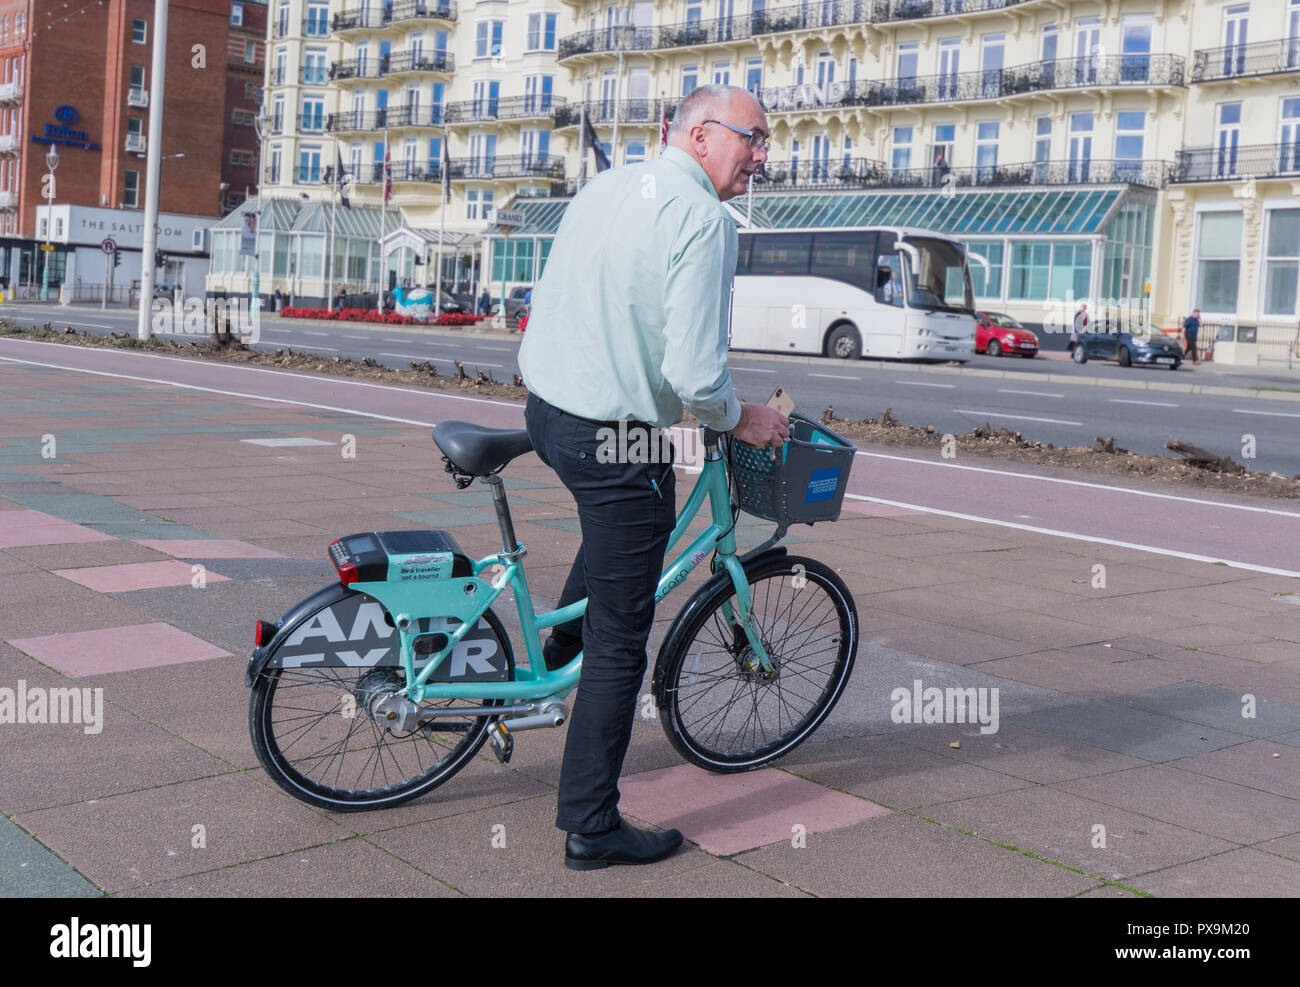 Middle aged man riding a rented / hired rental bicycle in Brighton, East Sussex, England, UK. - Stock Image